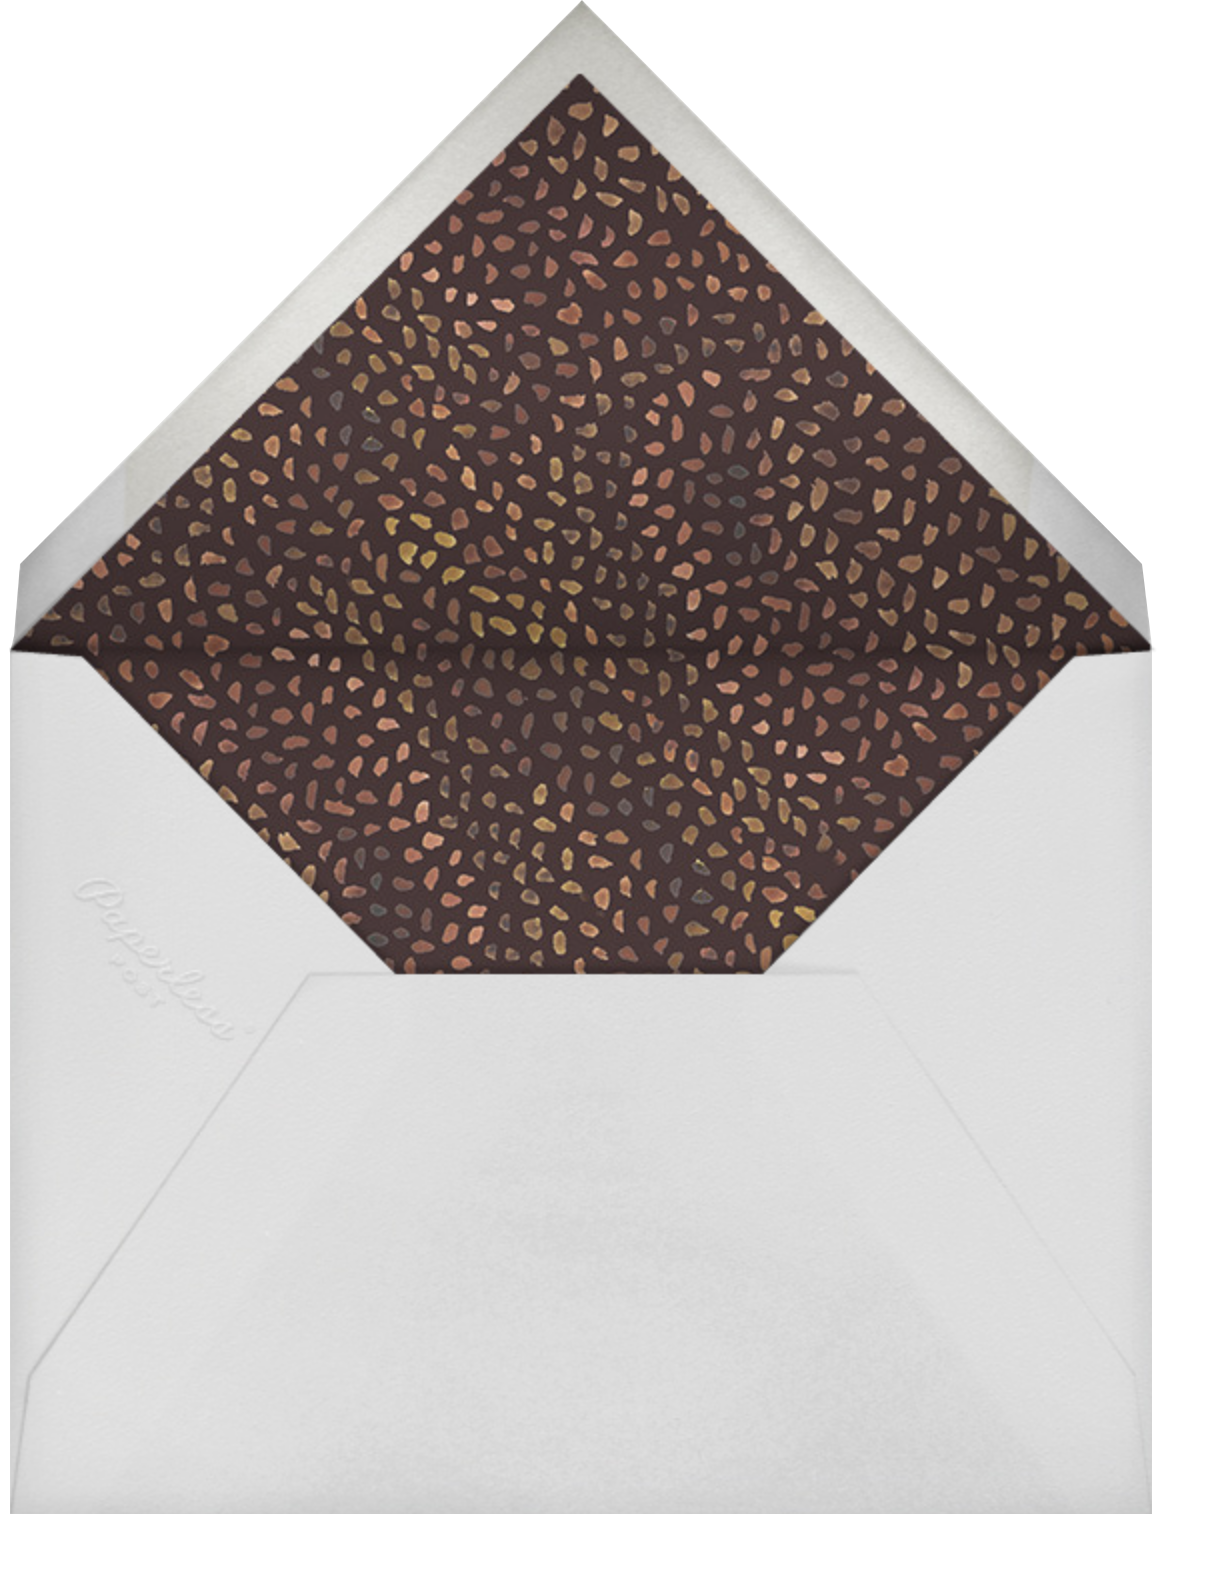 Busy Gettin' Fizzy - Happy Menocal - Adult birthday - envelope back